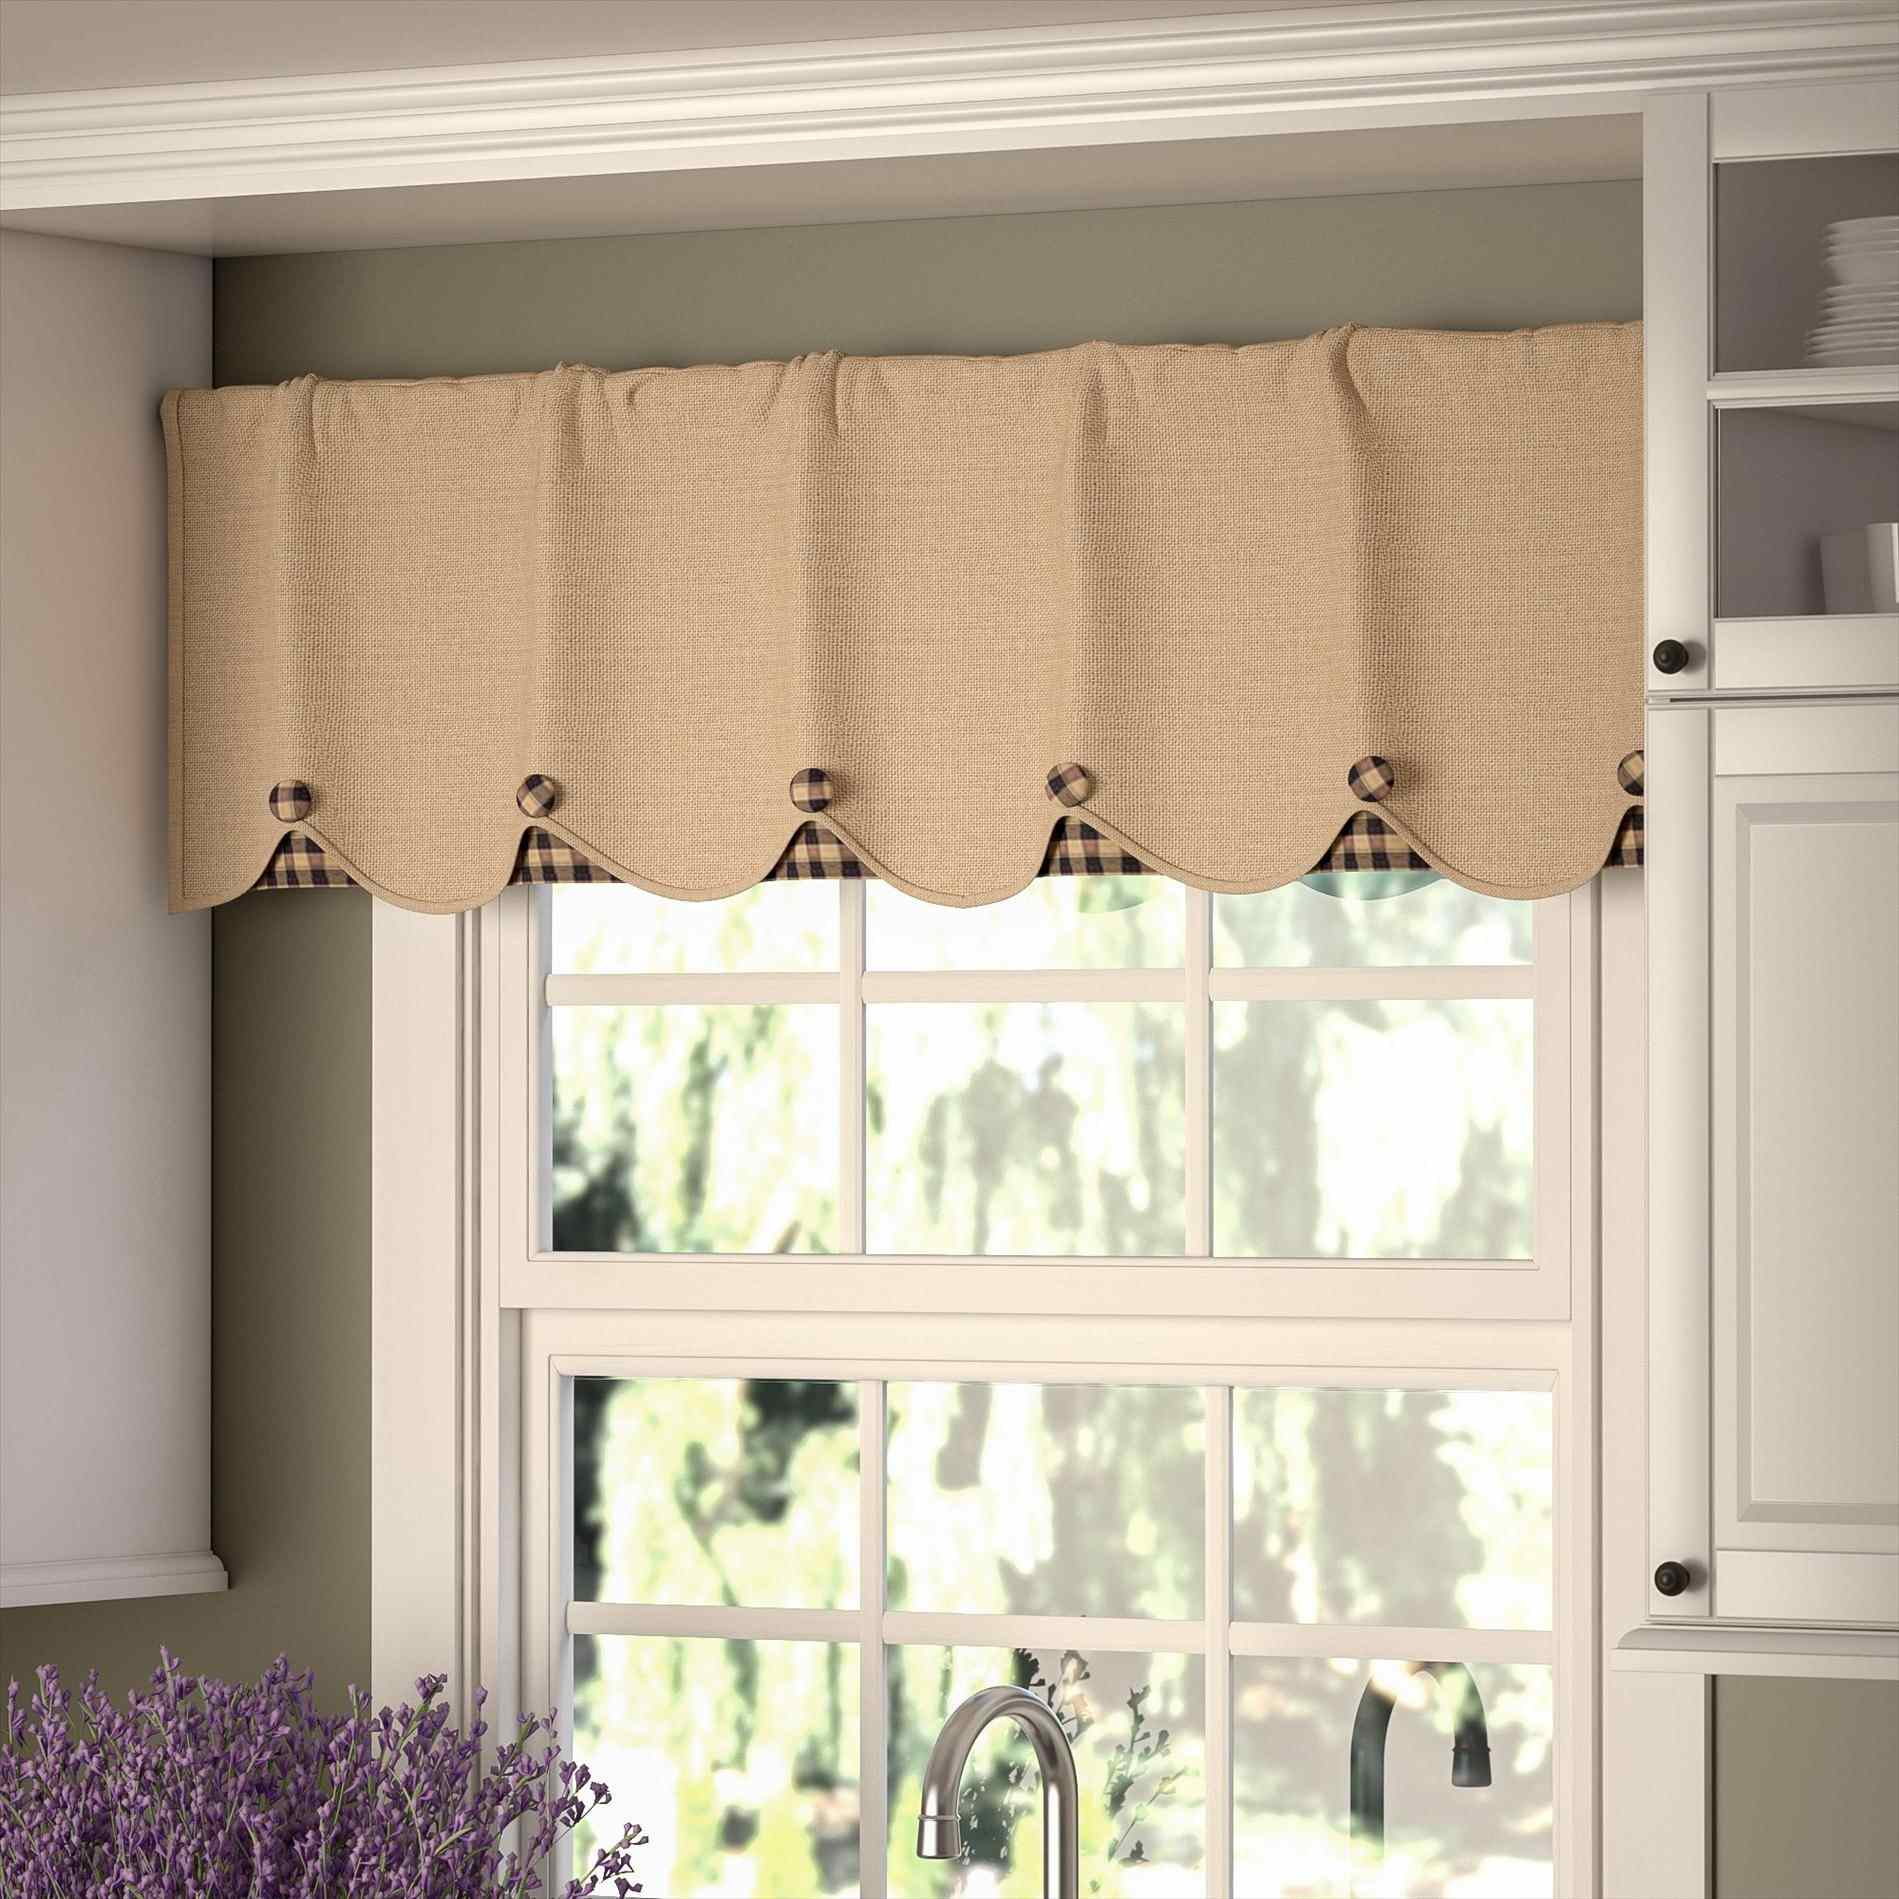 Children Blackout Curtains | Ruffle Blackout Curtains | Lime Green Polka Dot Curtains